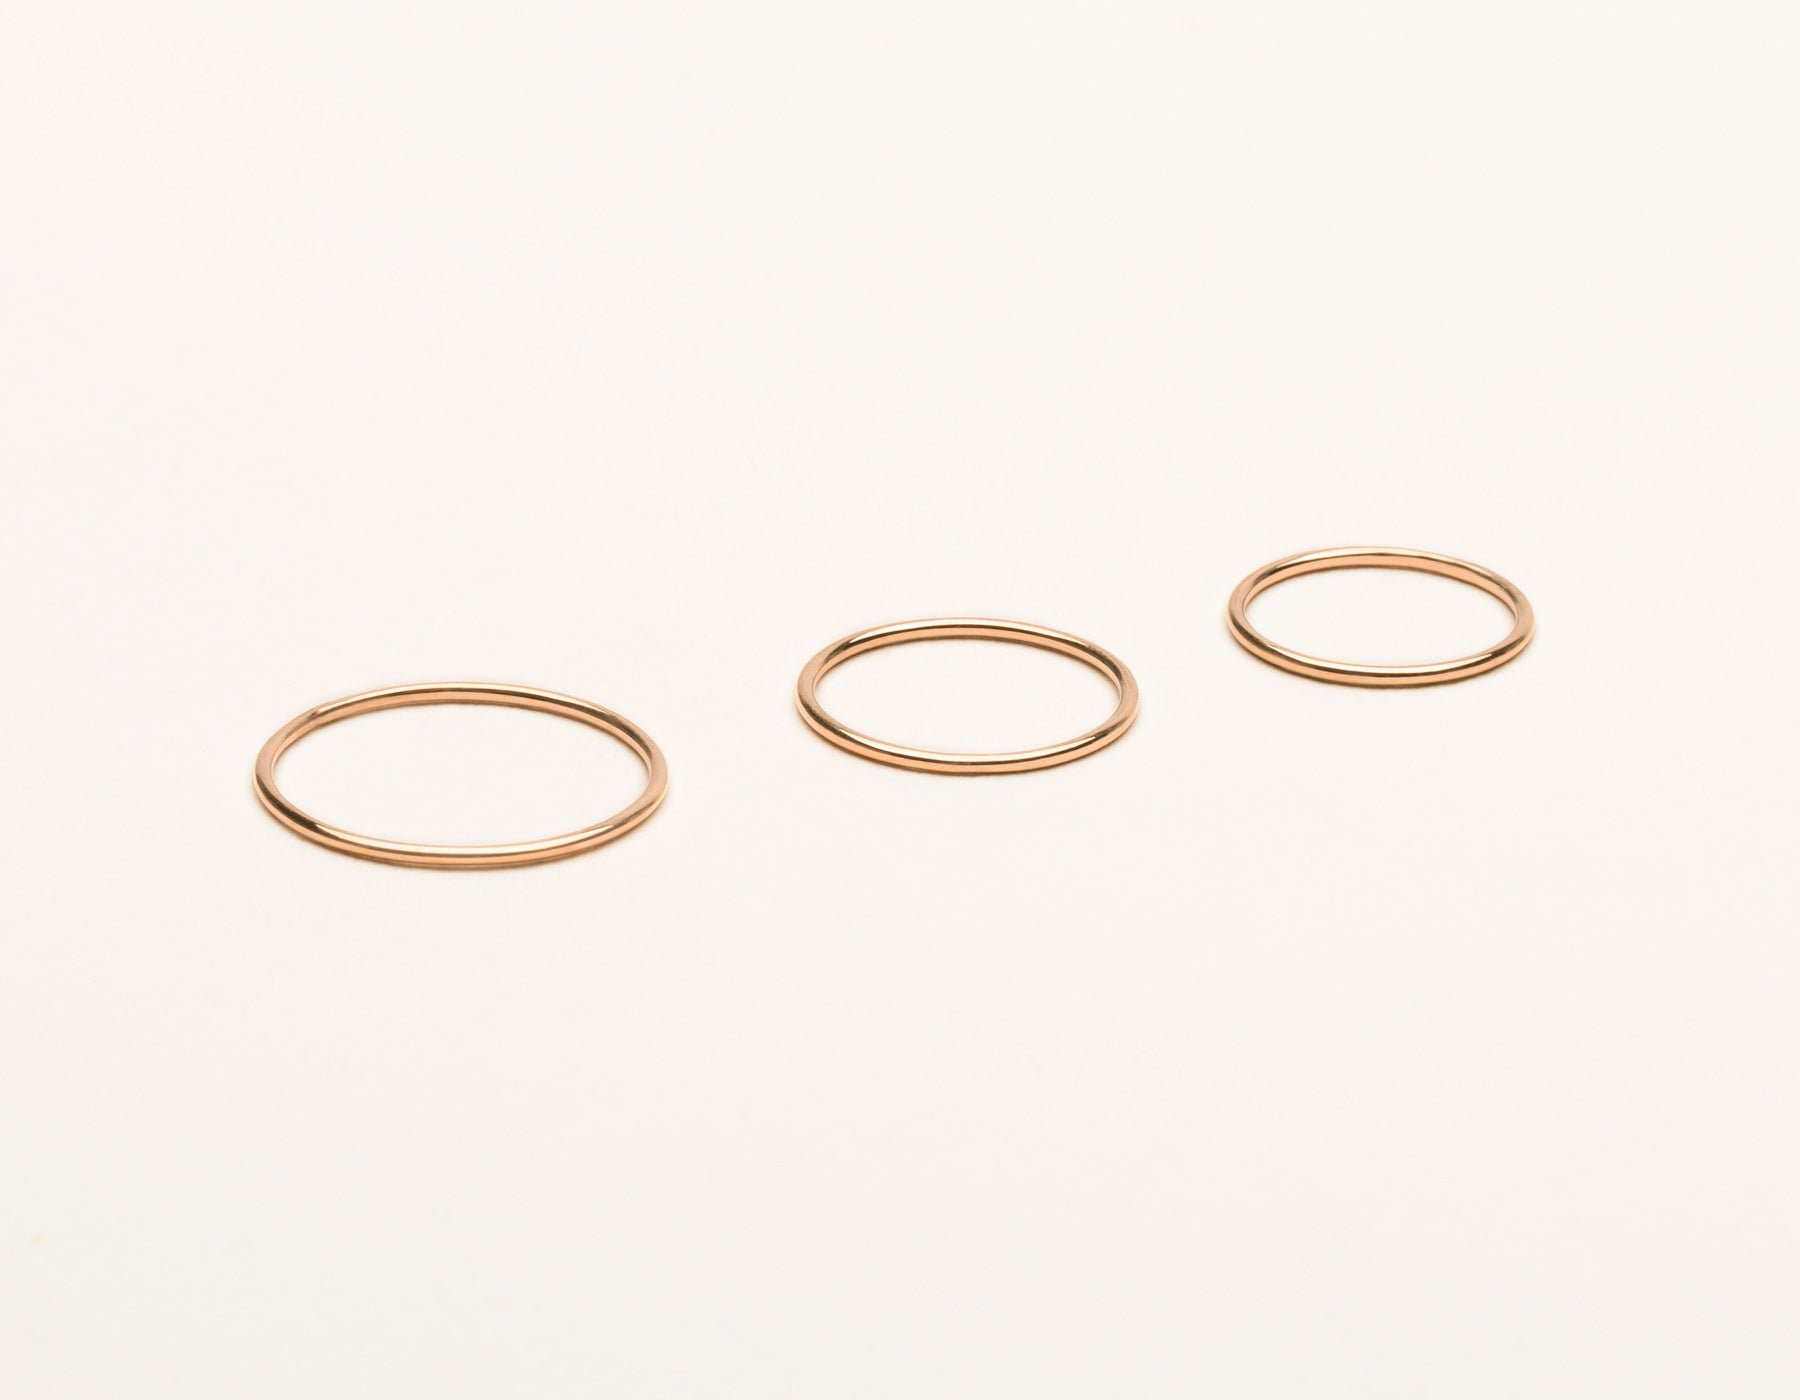 Skinny Stacker Ring Set 14k solid gold vrai & Oro plain round thin band, 14K Rose Gold